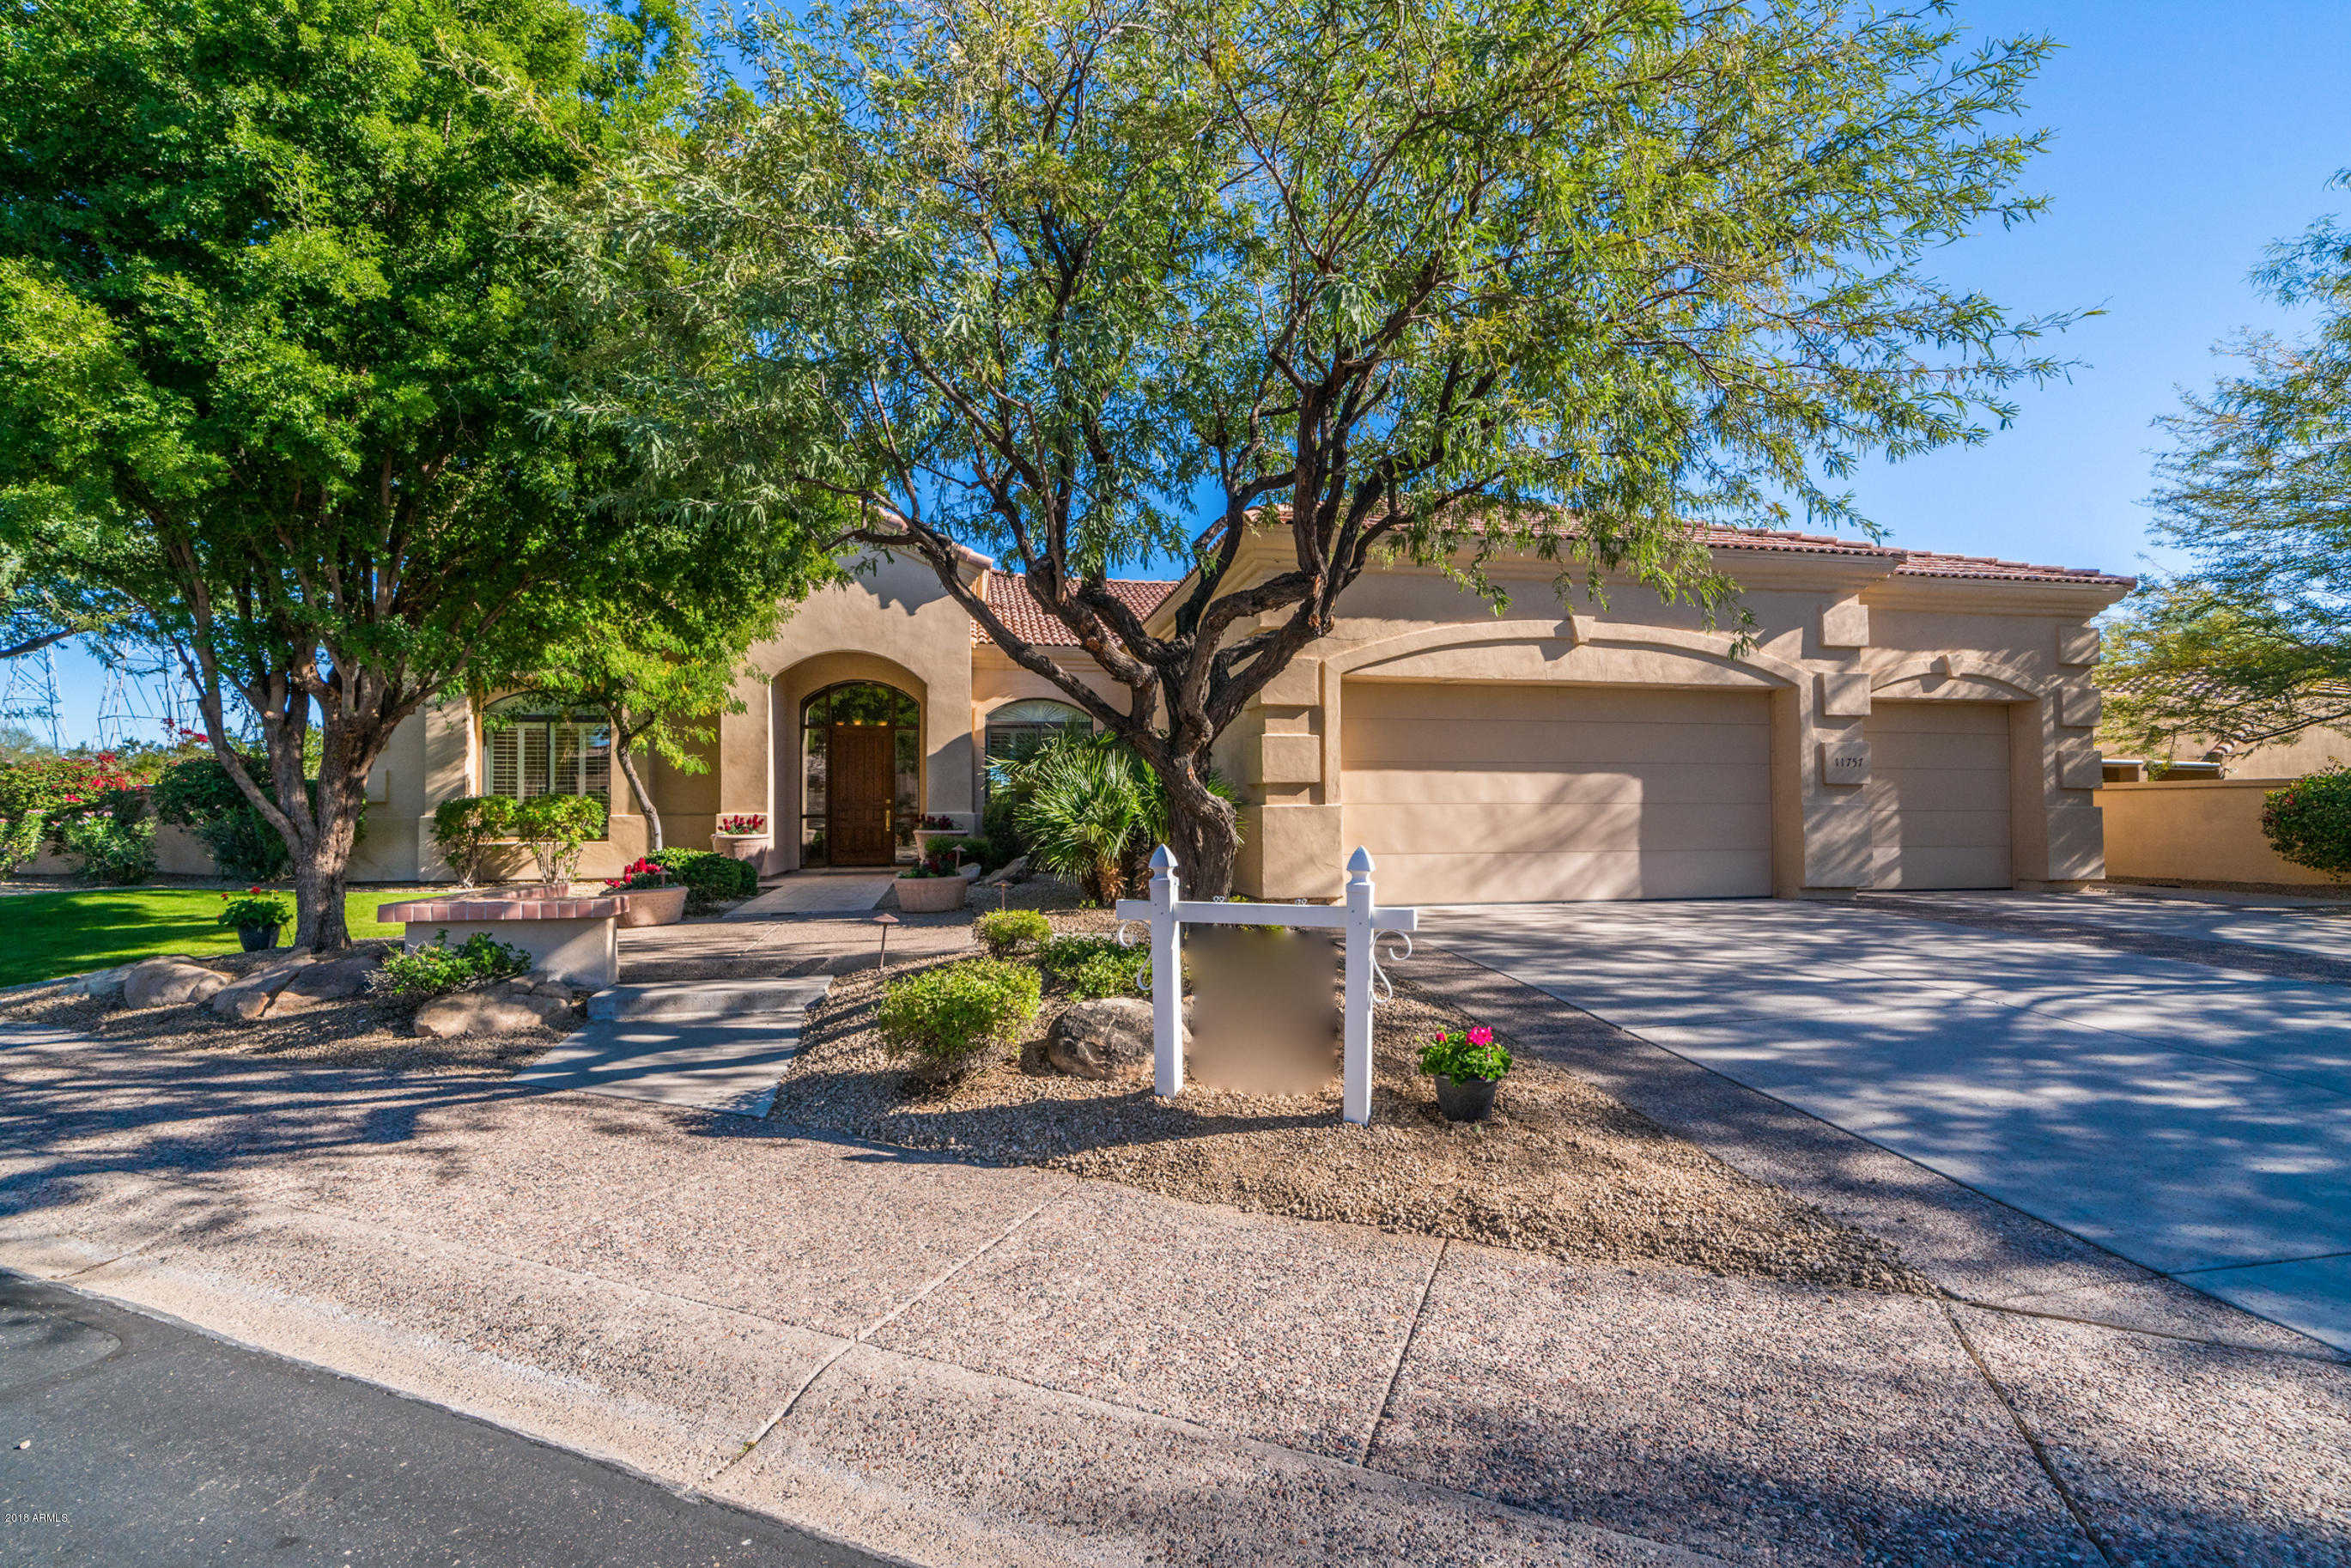 $599,000 - 3Br/3Ba - Home for Sale in Stonegate, The Regal, Scottsdale